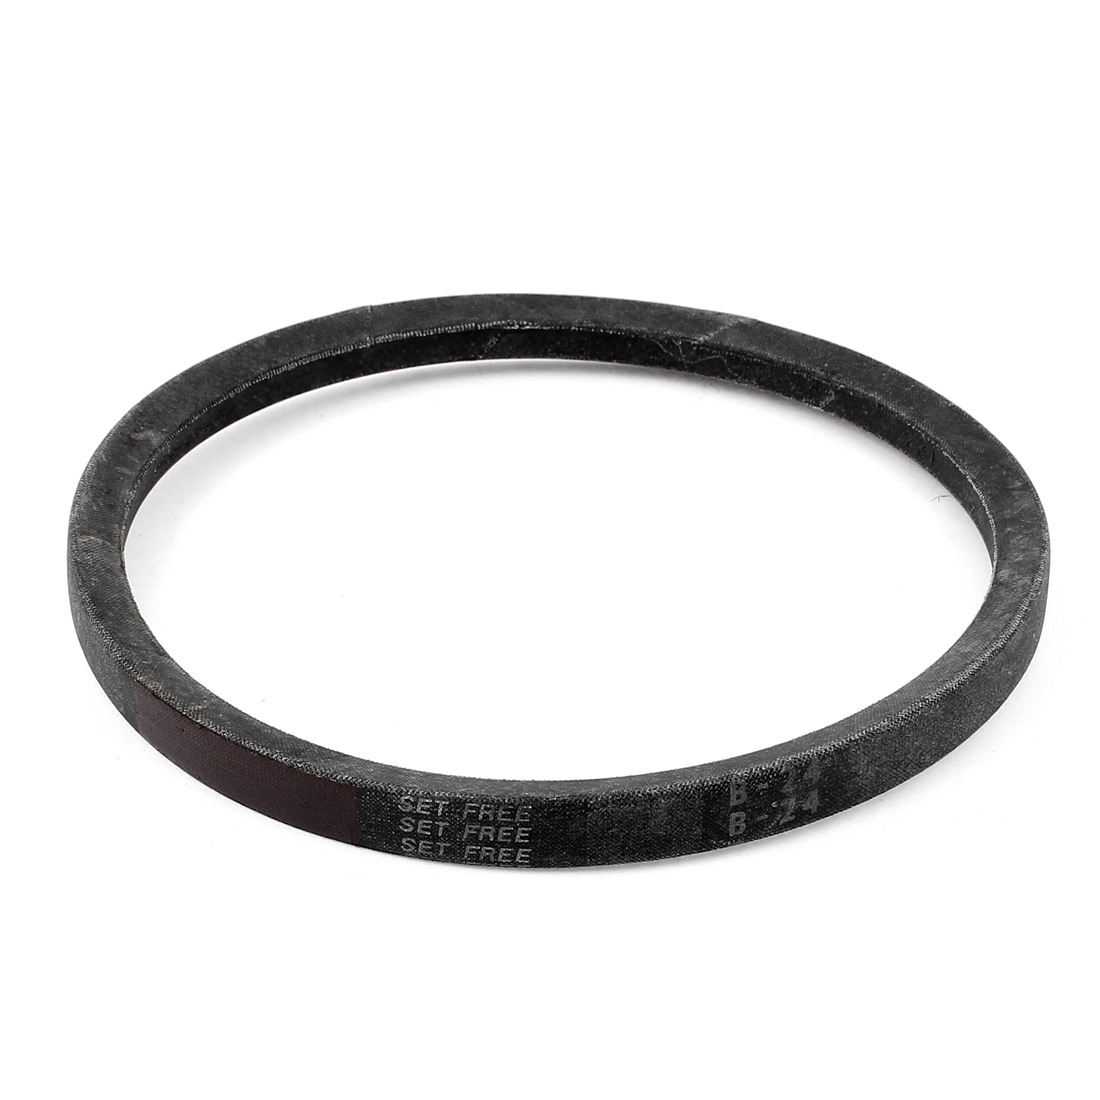 "Industrial Lawn Mower Transmission V Belt B24 5/8"" x 24"" Black"